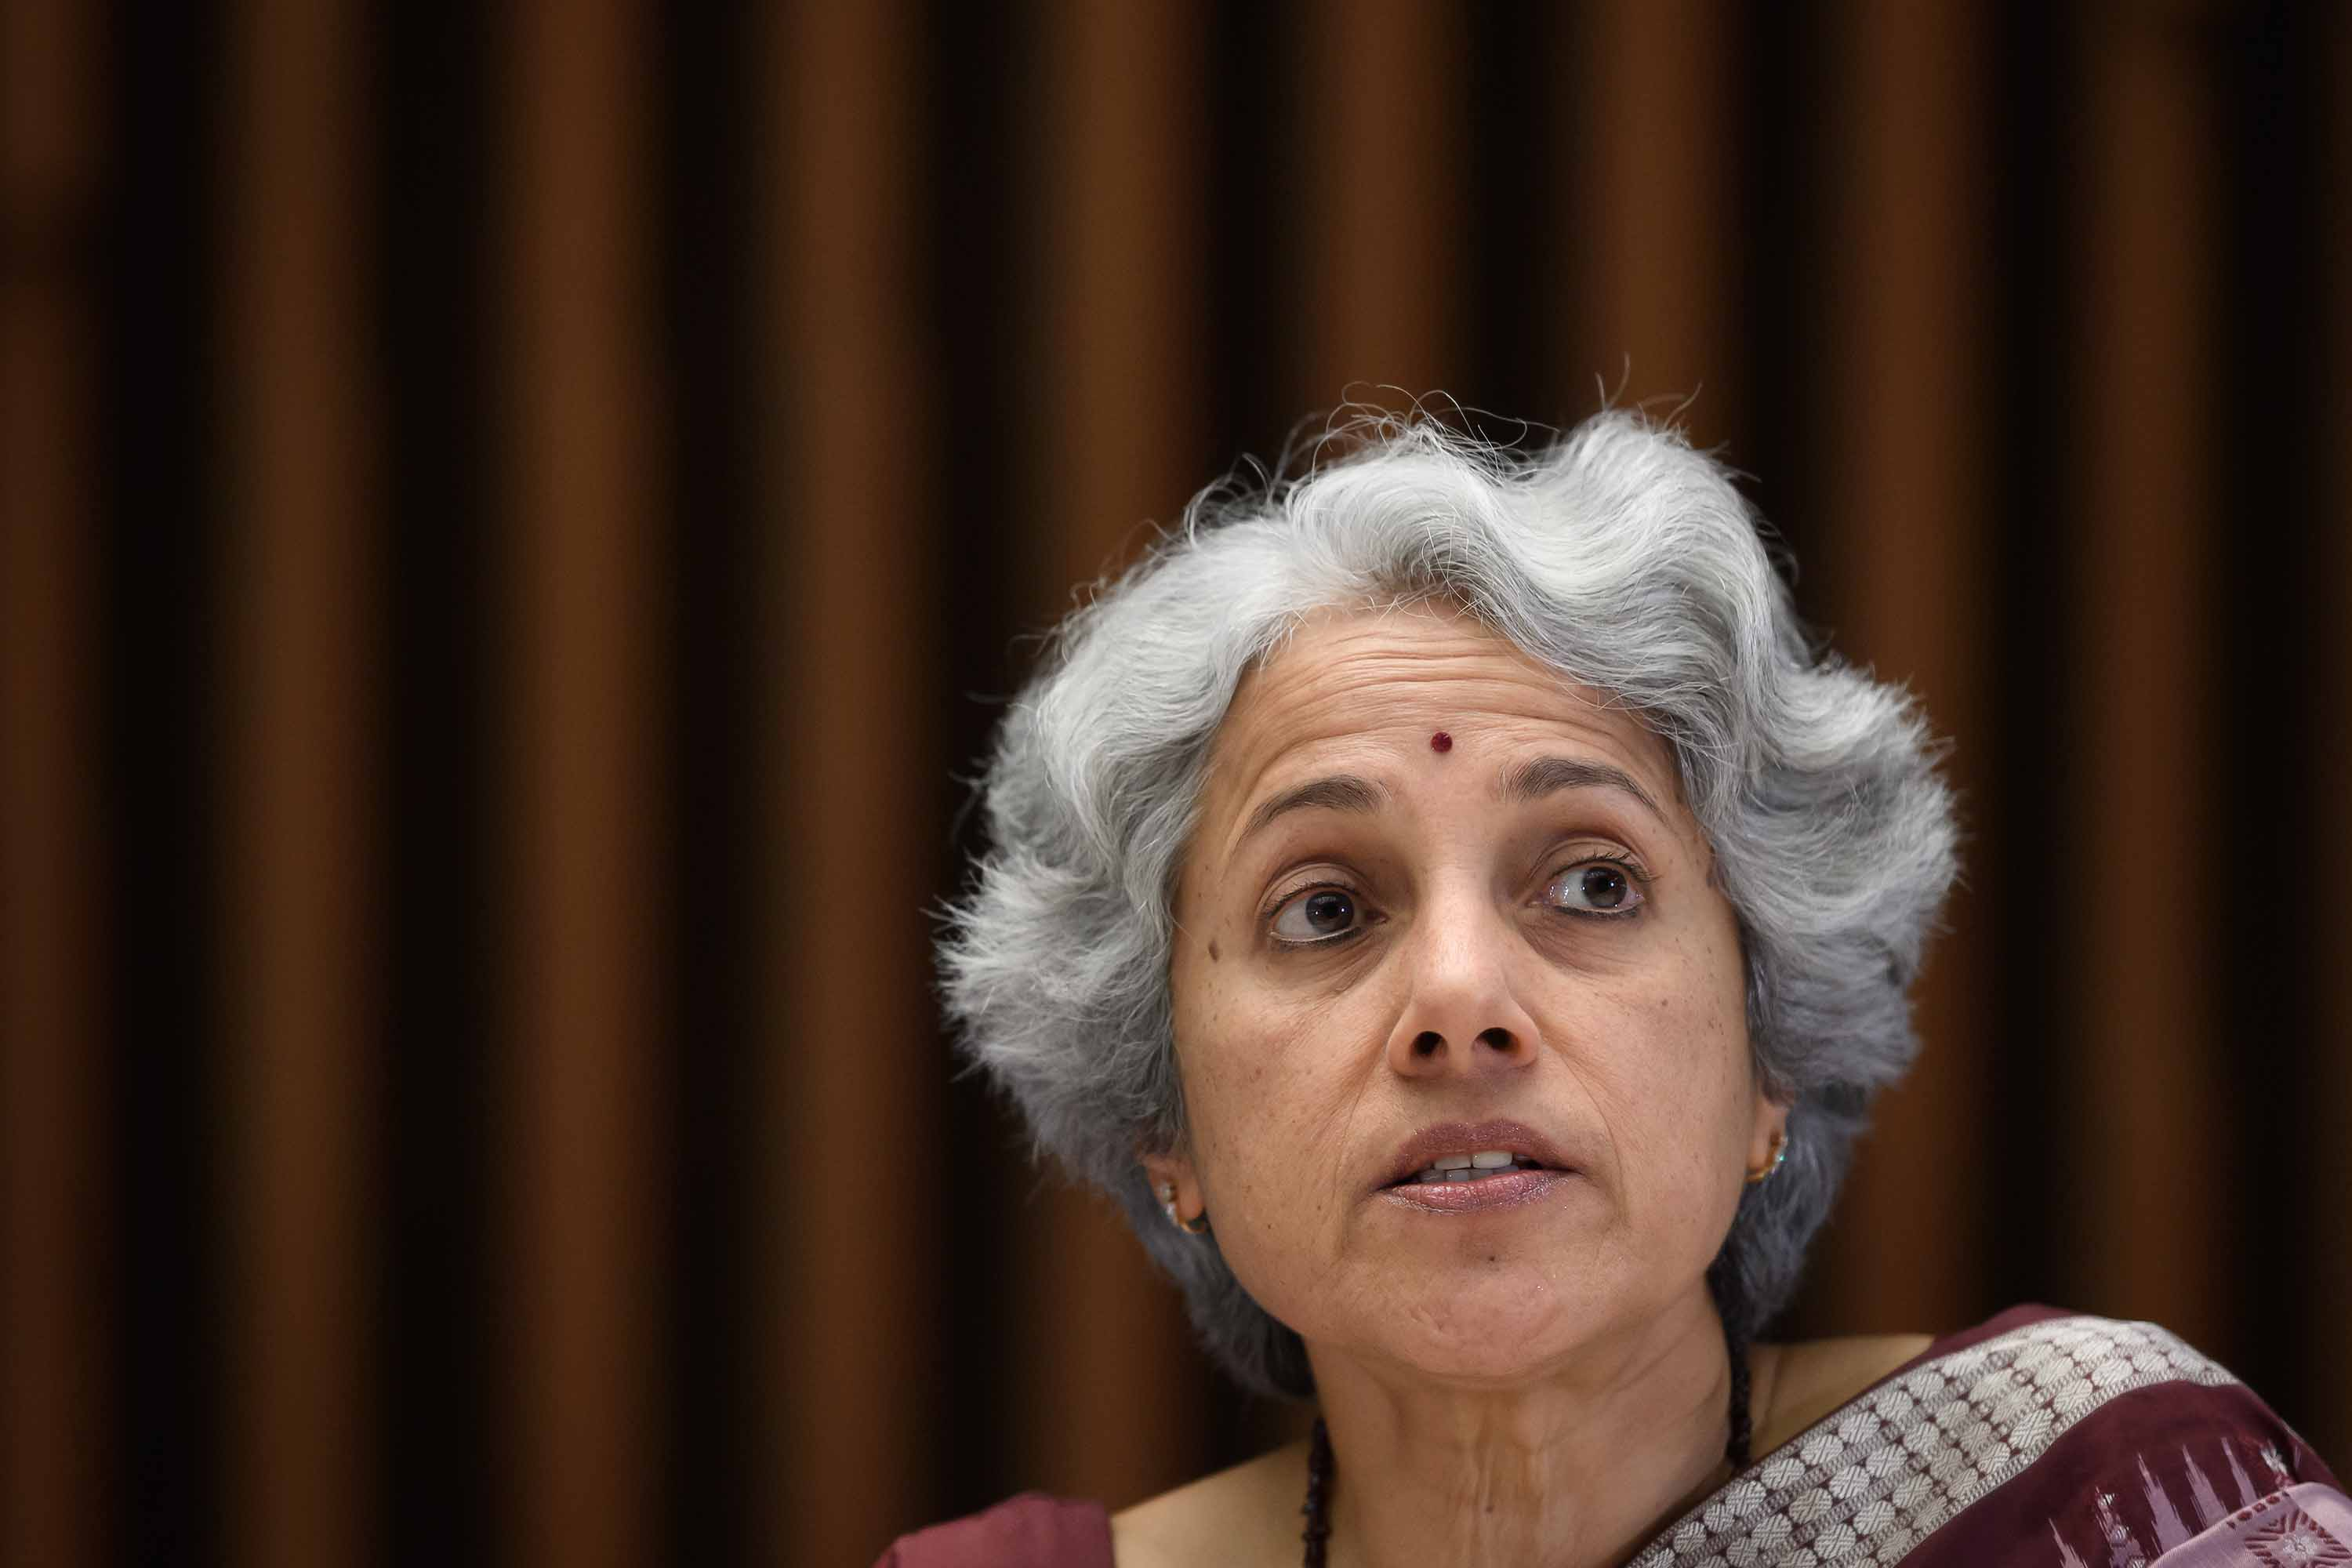 World Health Organization (WHO) Chief scientist Soumya Swaminathan is pictured during a news conference  in Geneva, Switzerland, on January 12.